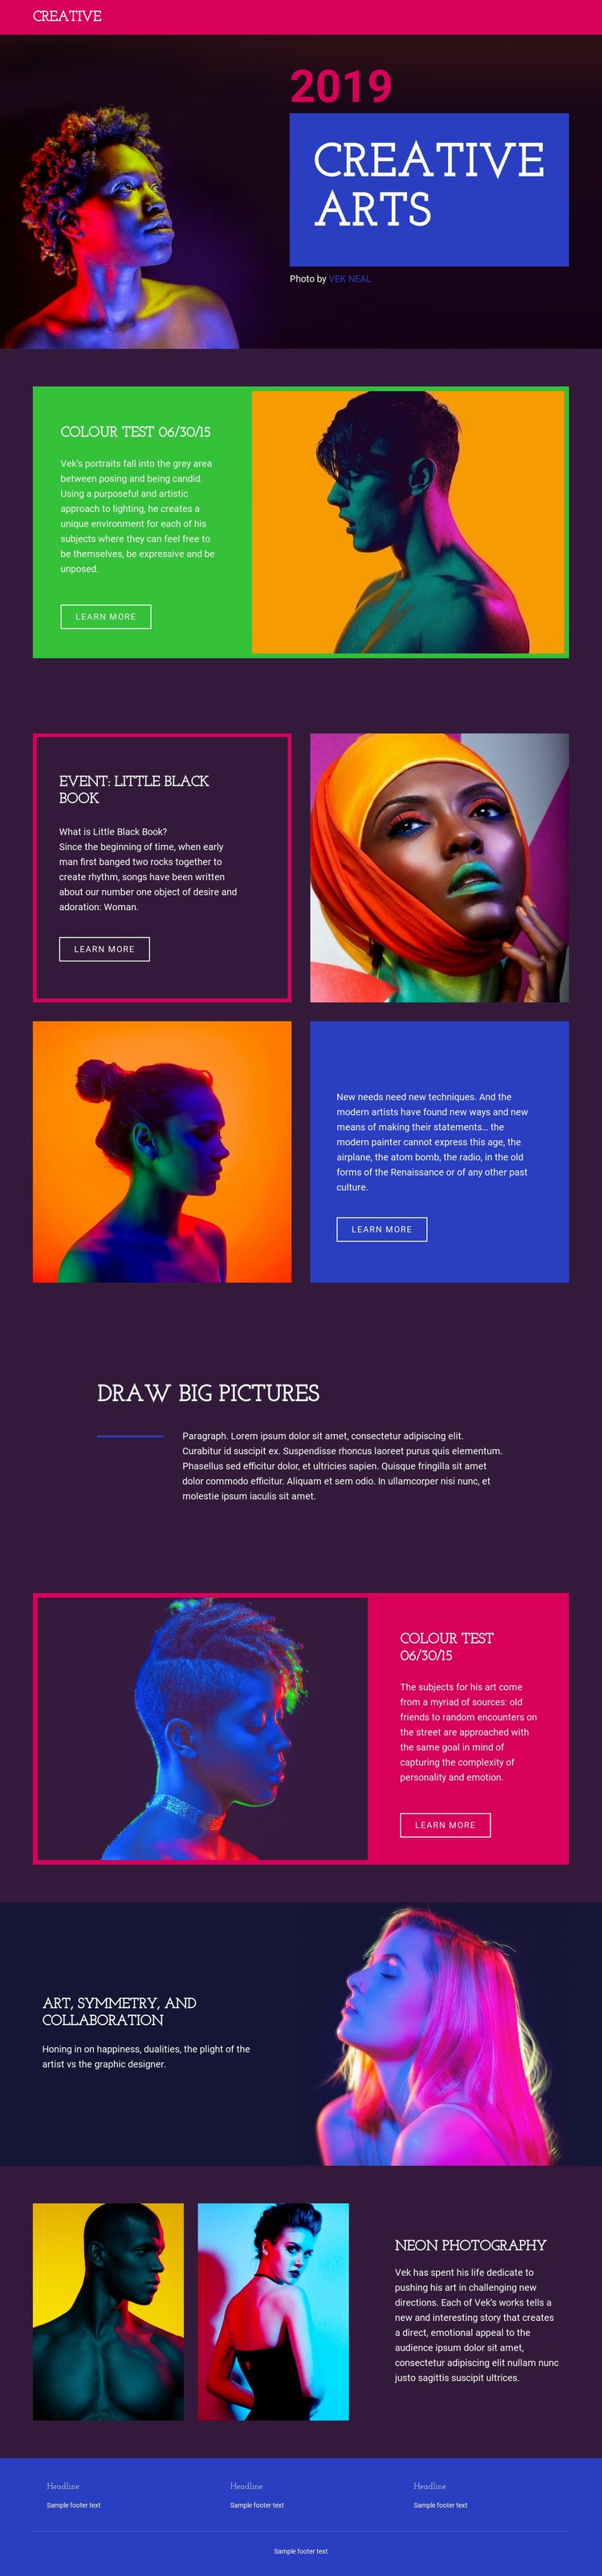 Limited-edition photography Static Site Generator